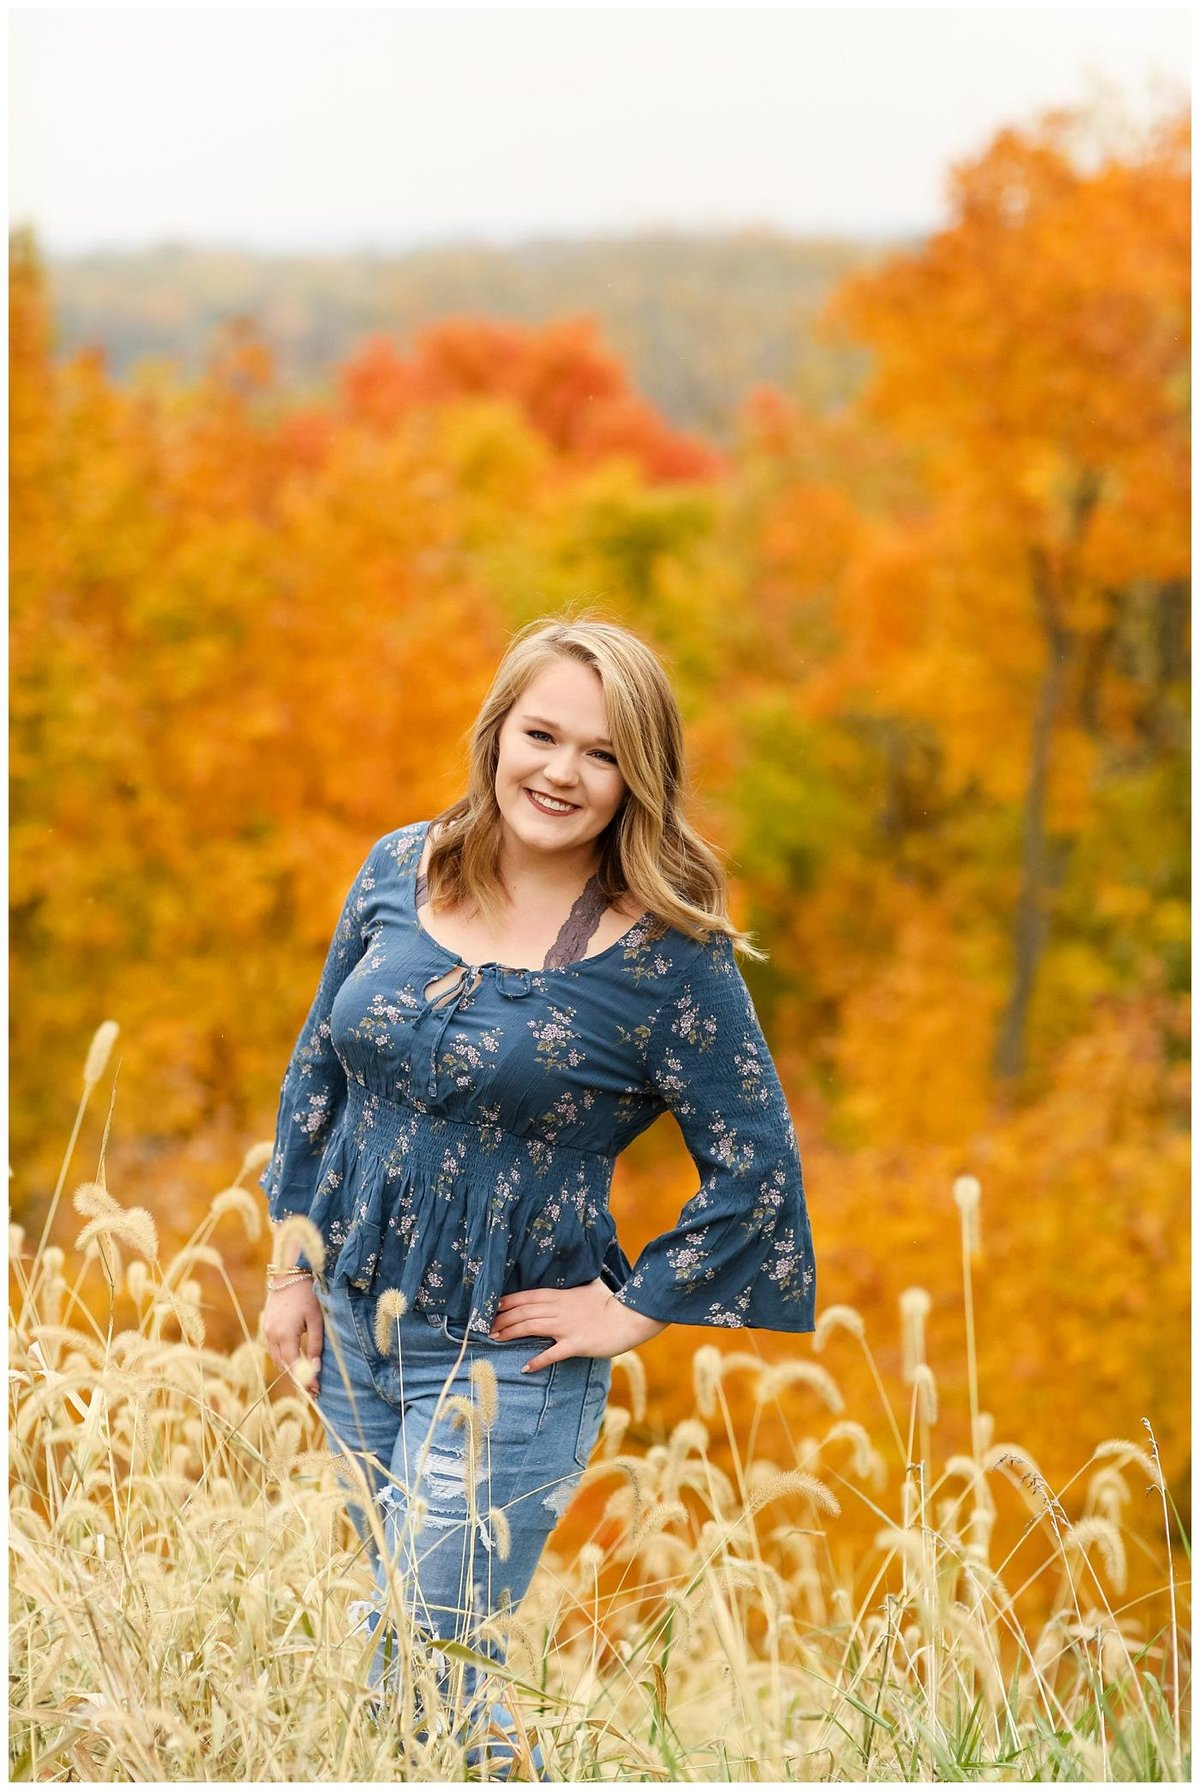 Central Illinois Senior Photographer | Macomb, IL Senior Photographer |  Creative Touch Photography_4860